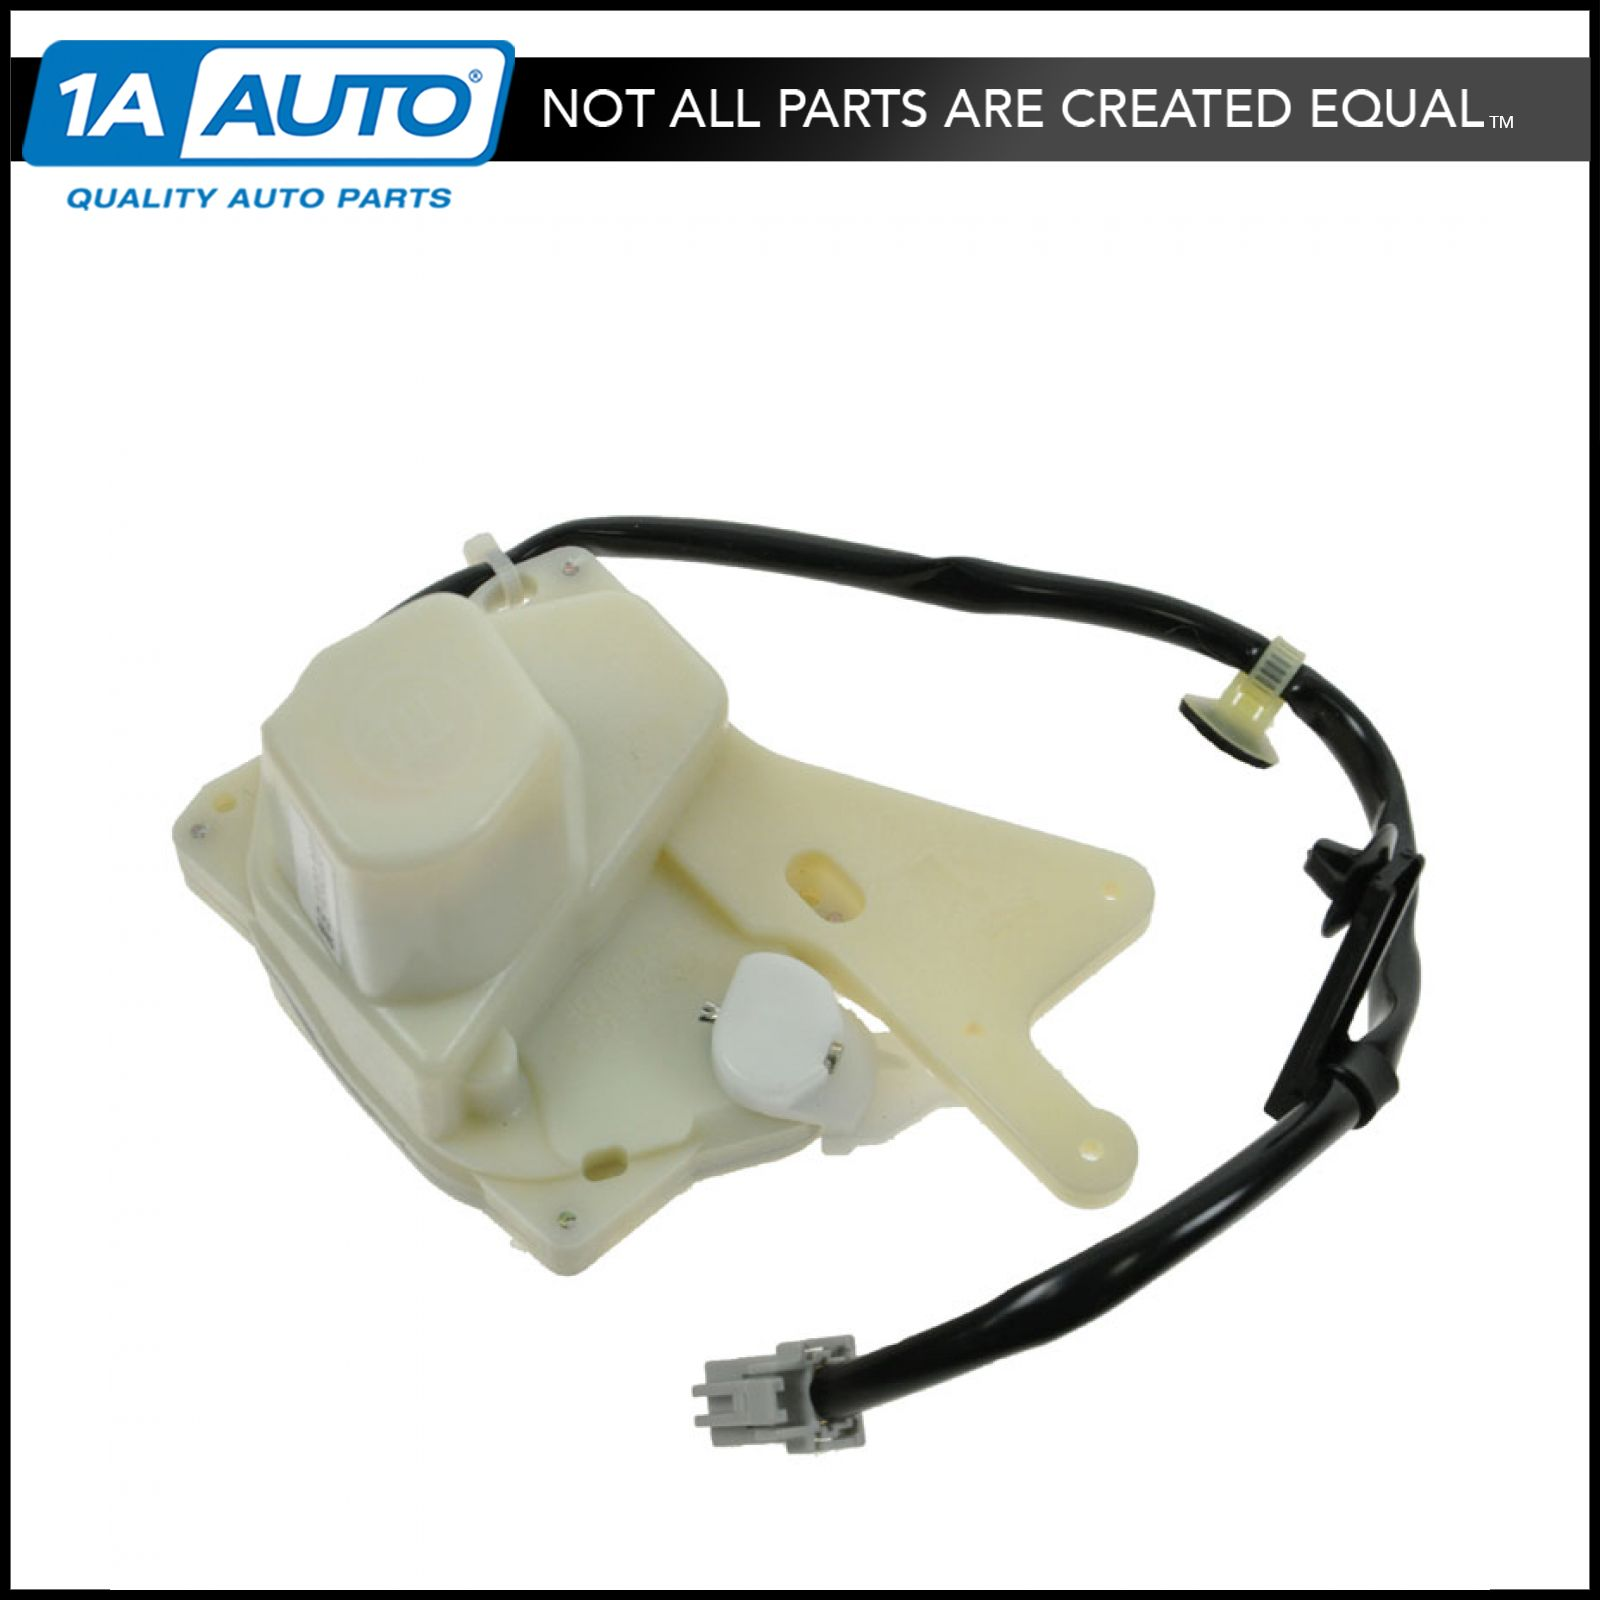 Details about Power Door Lock Actuator Rear Left Driver Side for 94-97  Honda Accord